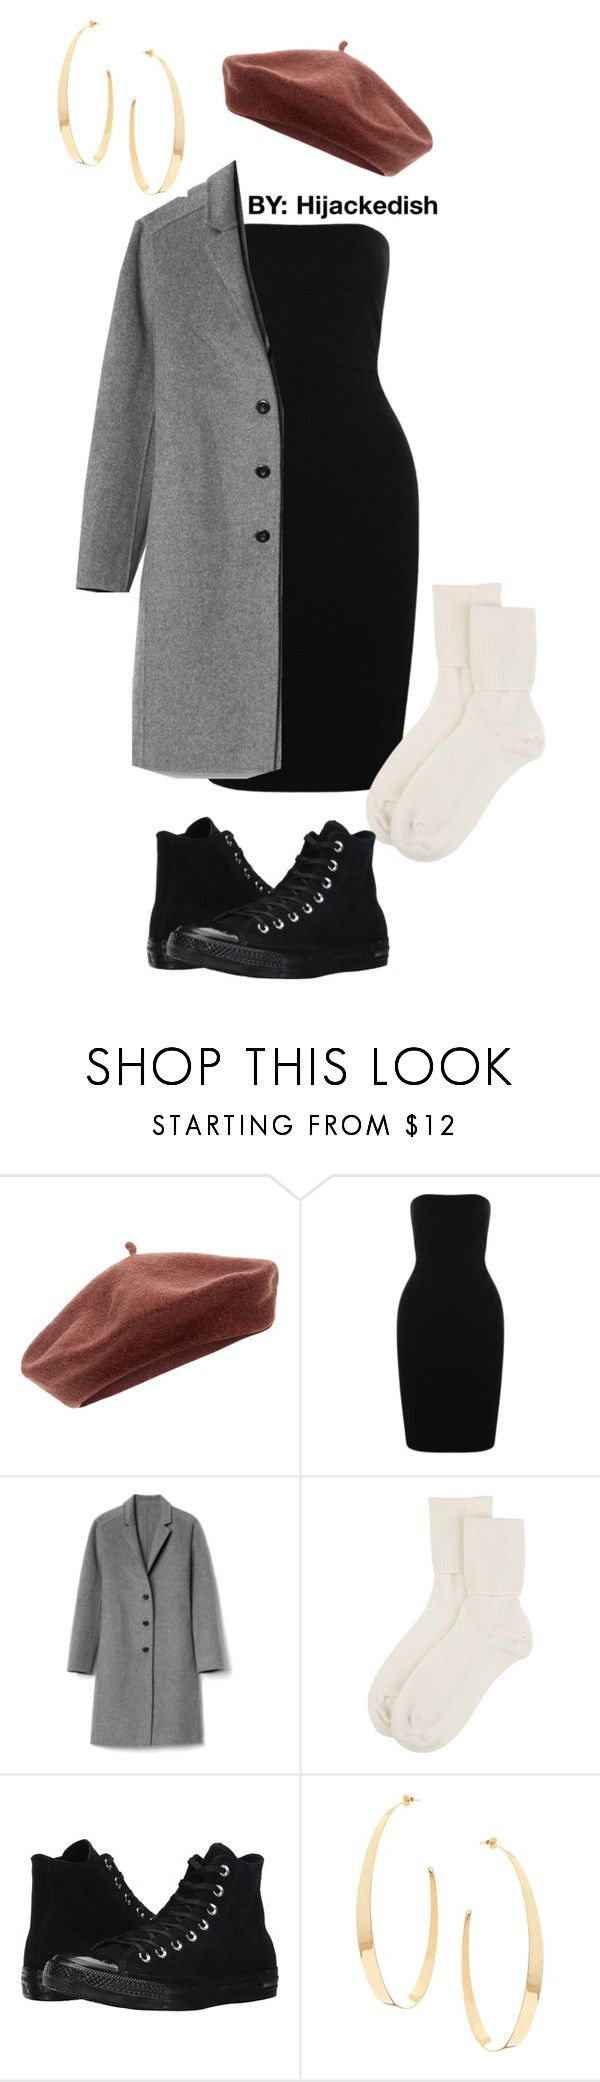 """The little black bandeau"" by hijackedish on Polyvore featuring Accessorize, Boohoo, Gap, Johnstons of Elgin, Converse and Lana"